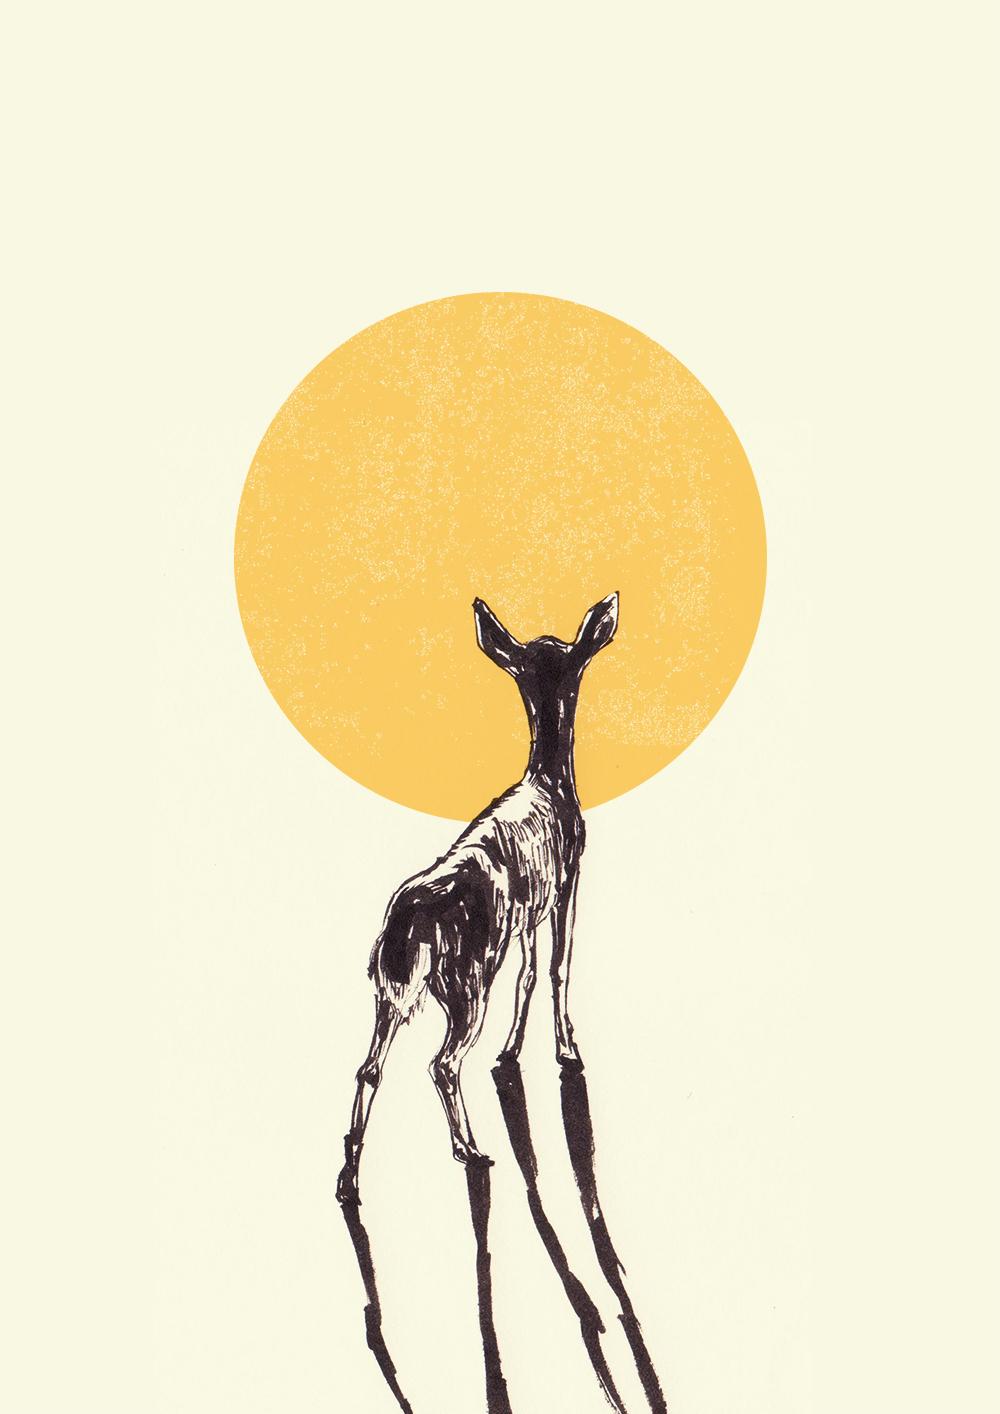 Ishaarah_Arnold_Sun_Illustration